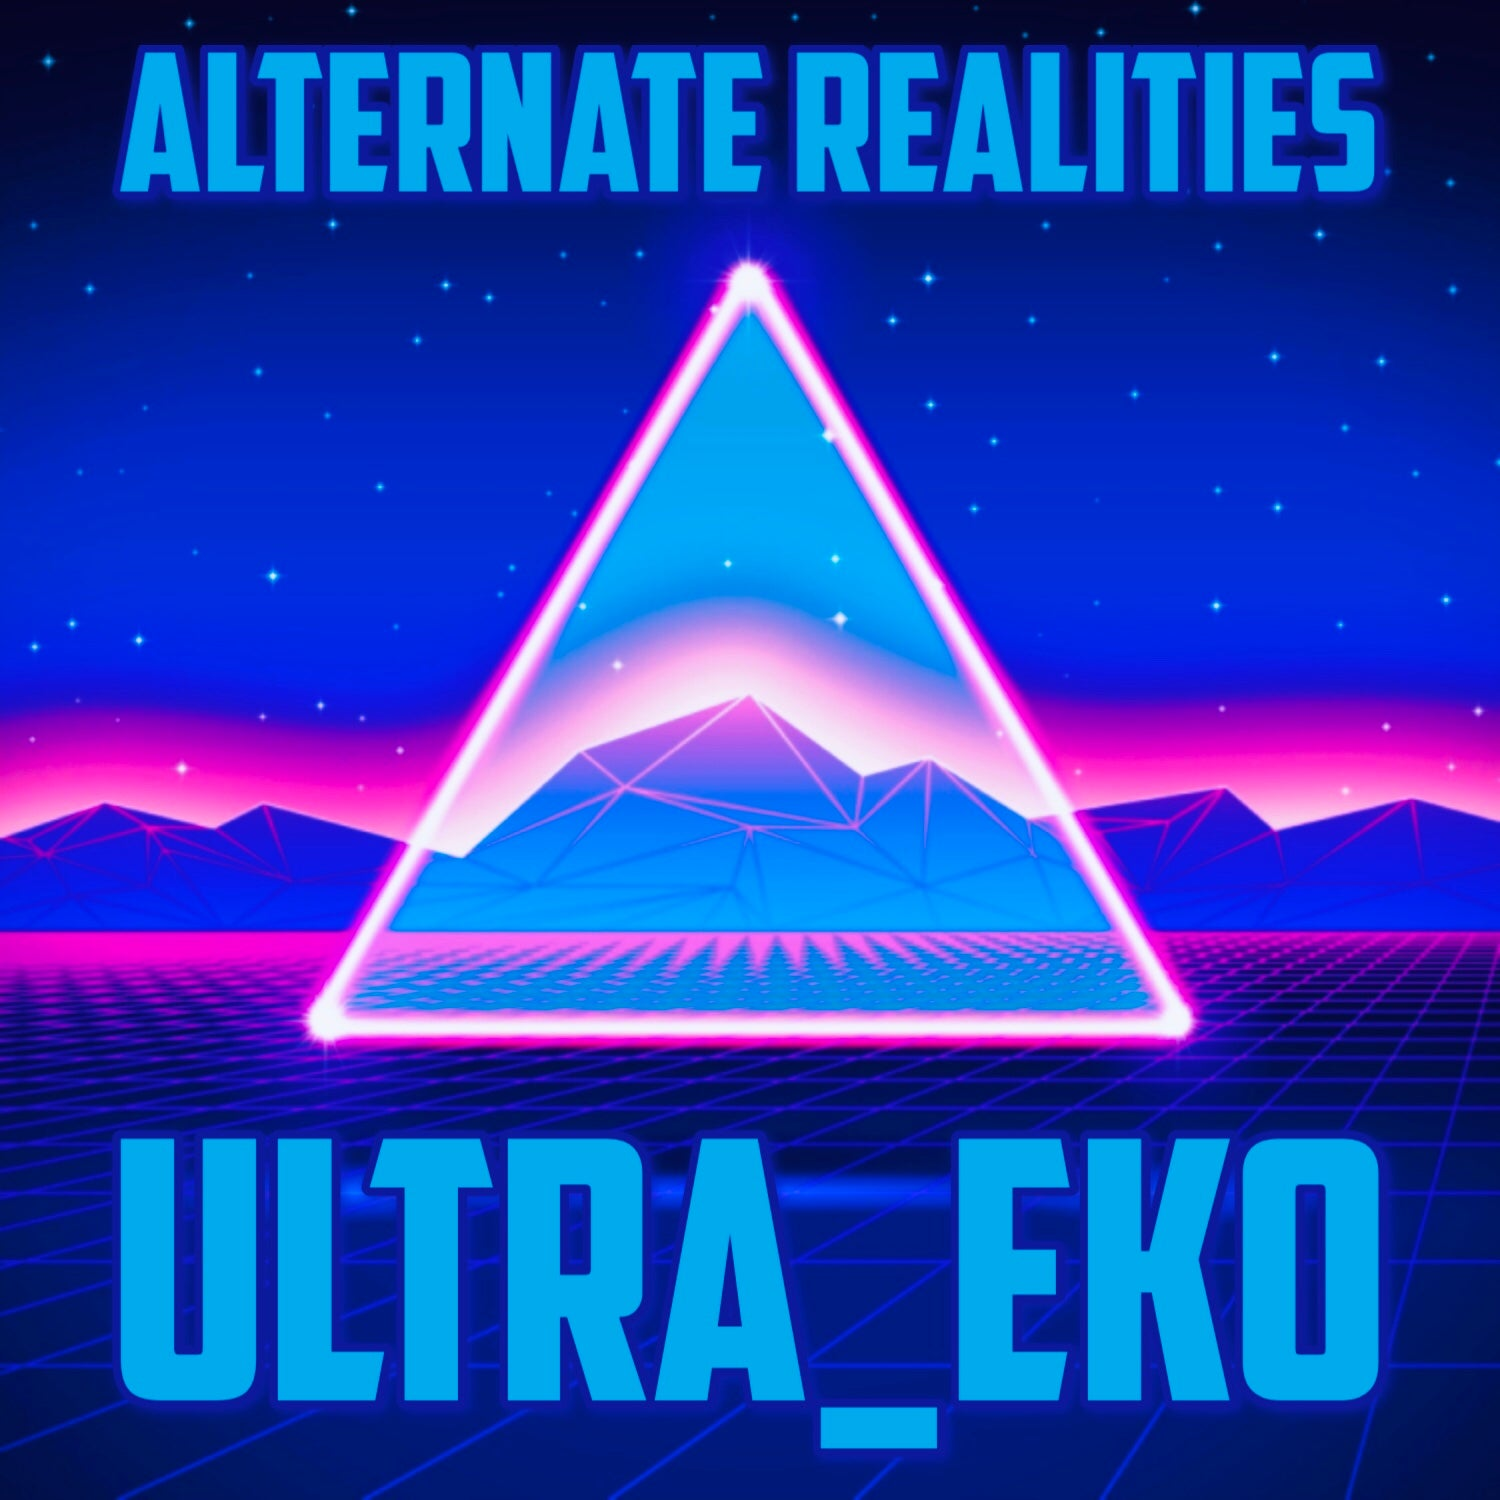 Ultra_Eko – 'Alternate Realities'